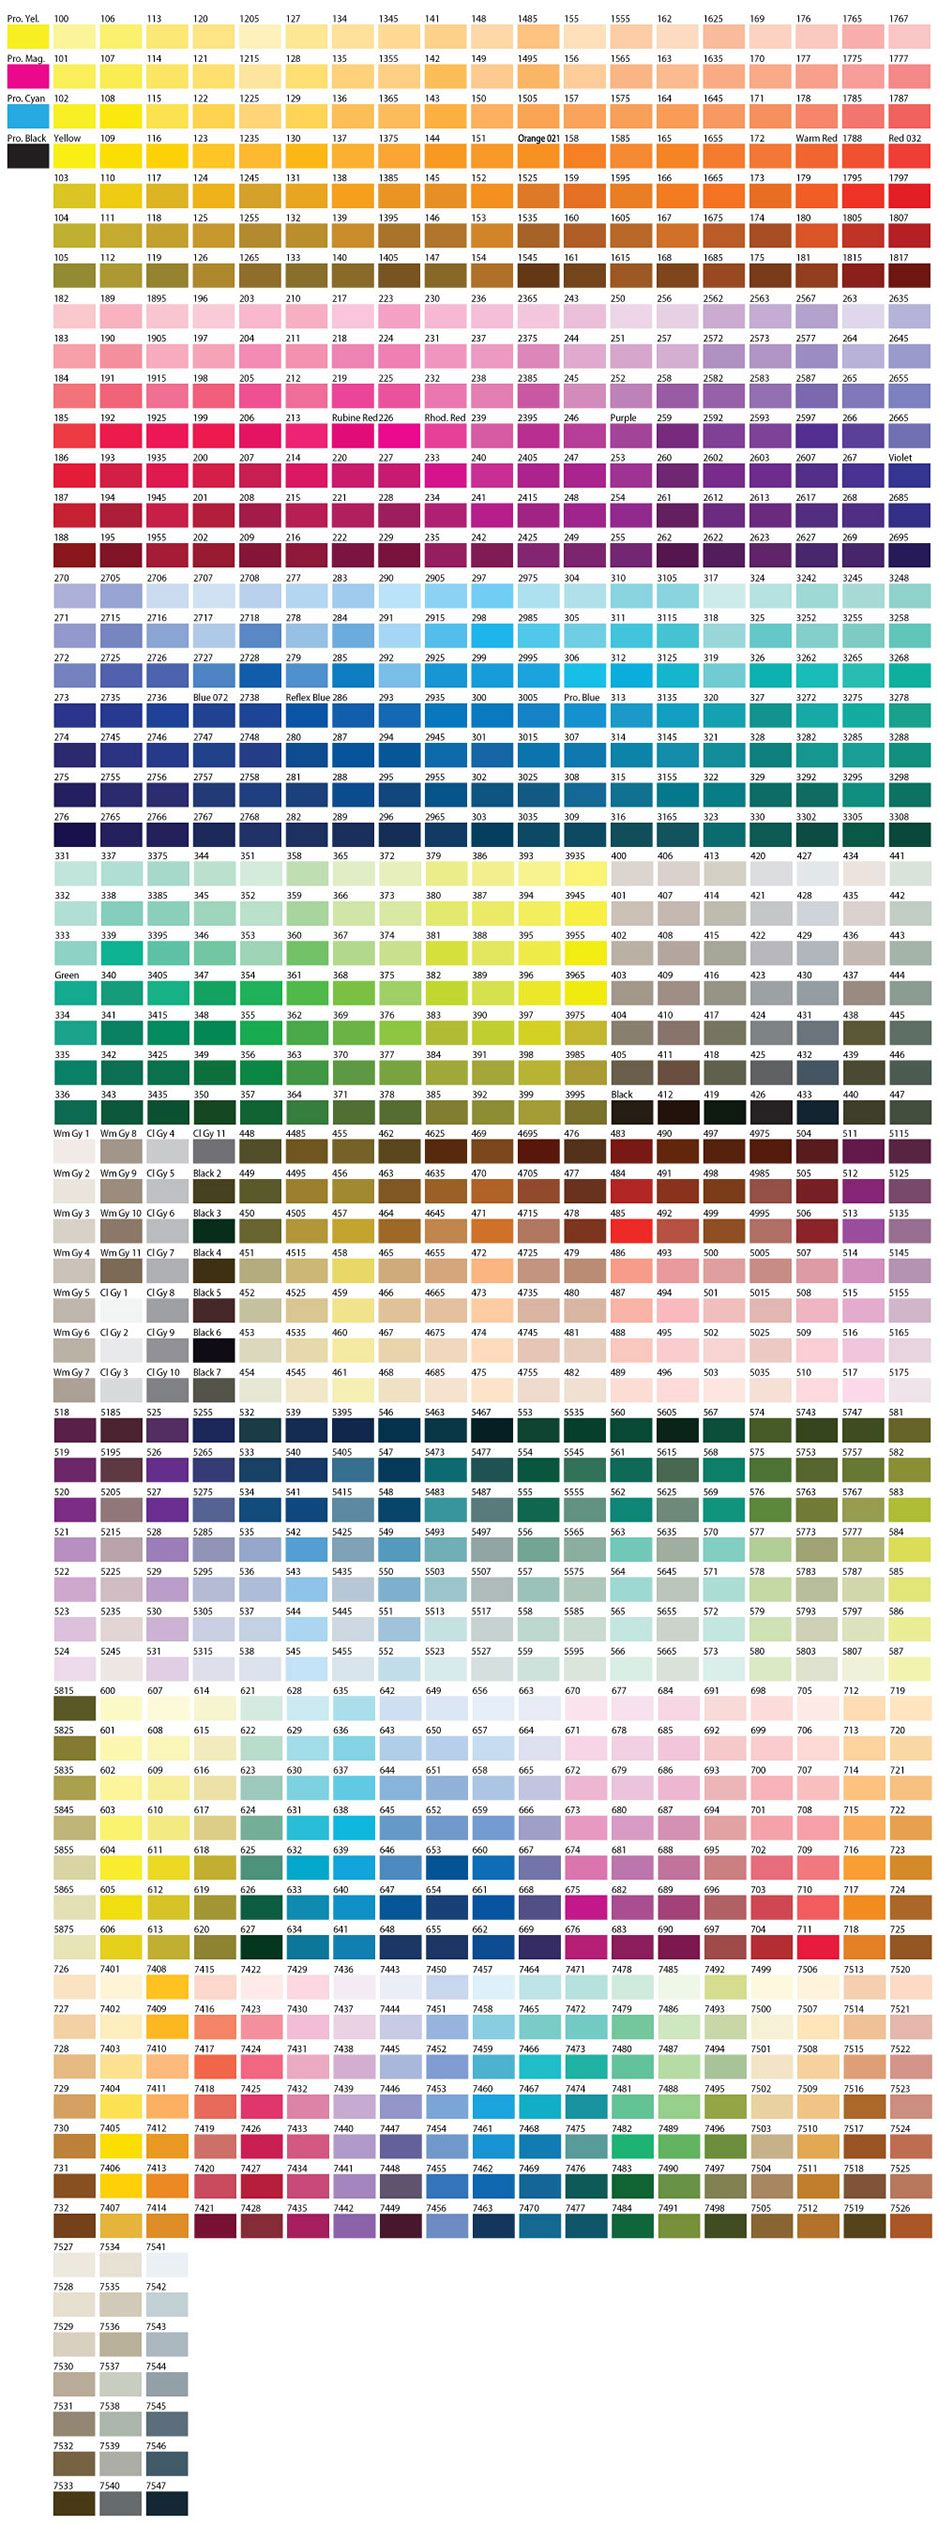 Color Chart ( Pantone / PMS ) - not pms, i take it! This is very color-rich, extravagant! #colorpalettecopies